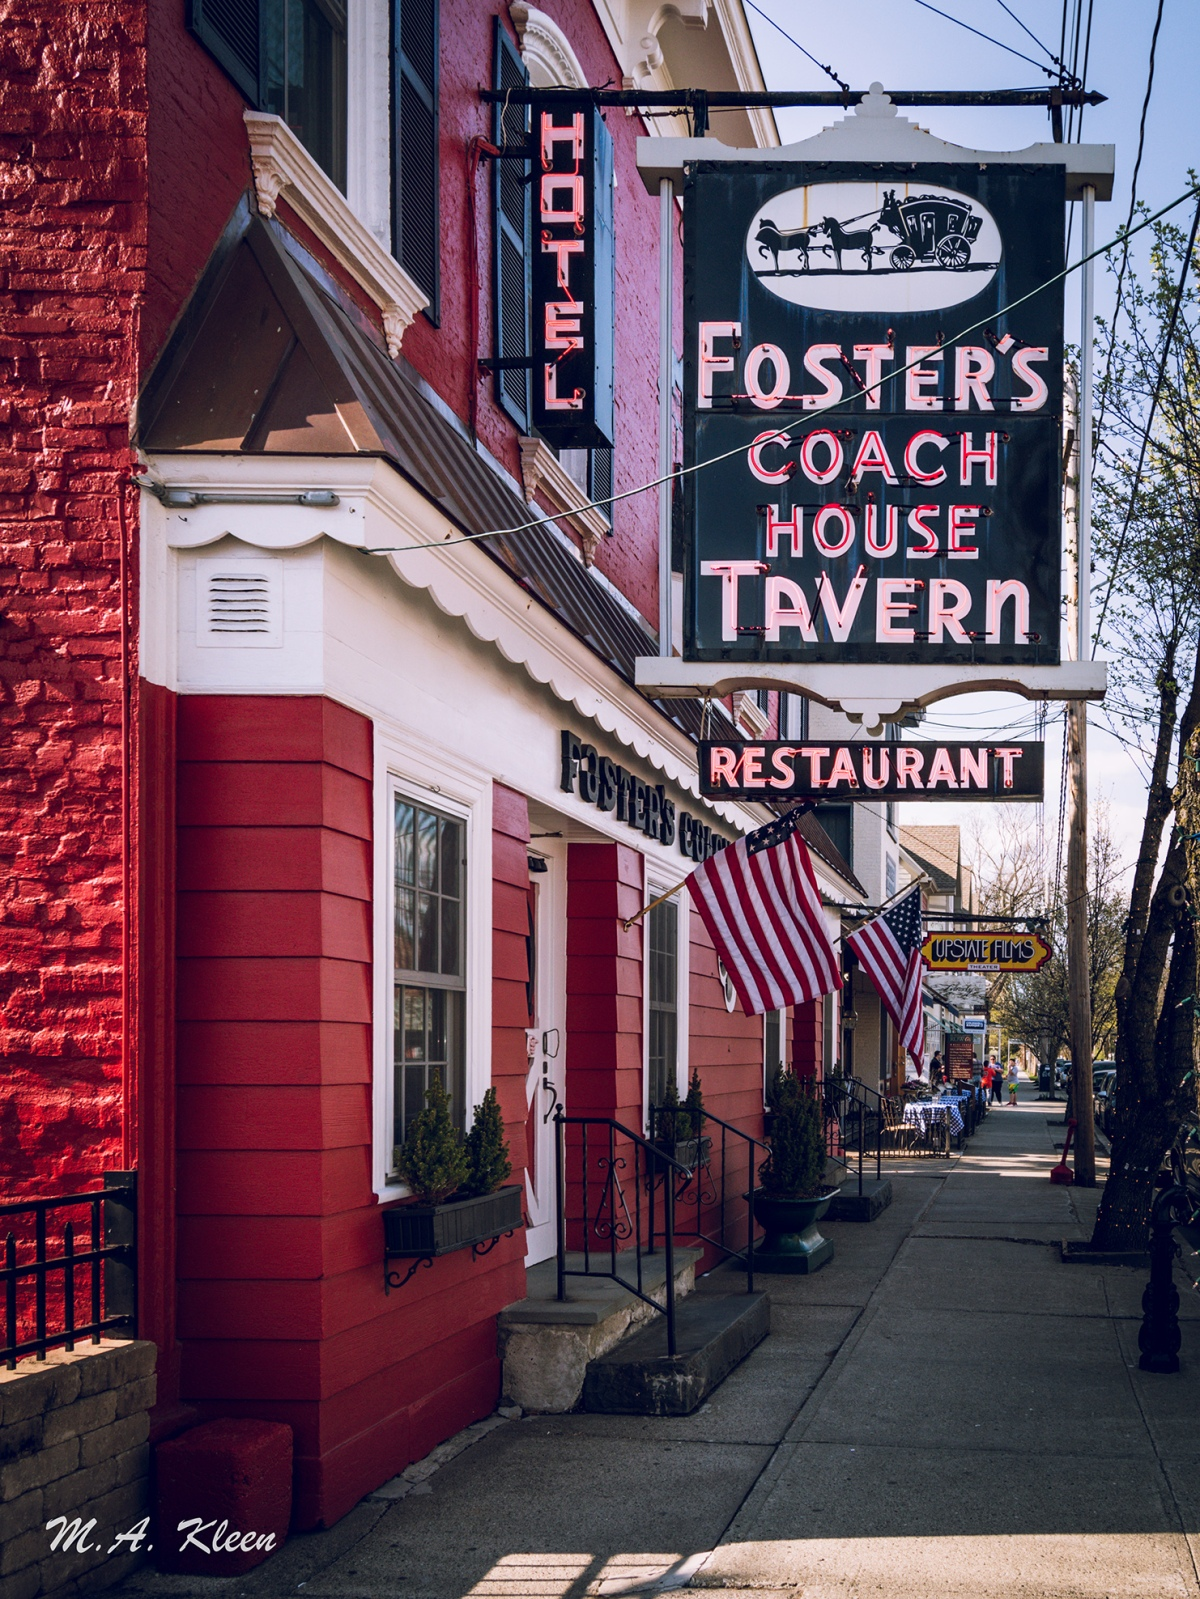 Neon sign for Fosters Coach House Tavern, at 6411 Montgomery Street (U.S. Route 9) in Rhinebeck, New York, along the Hudson River.